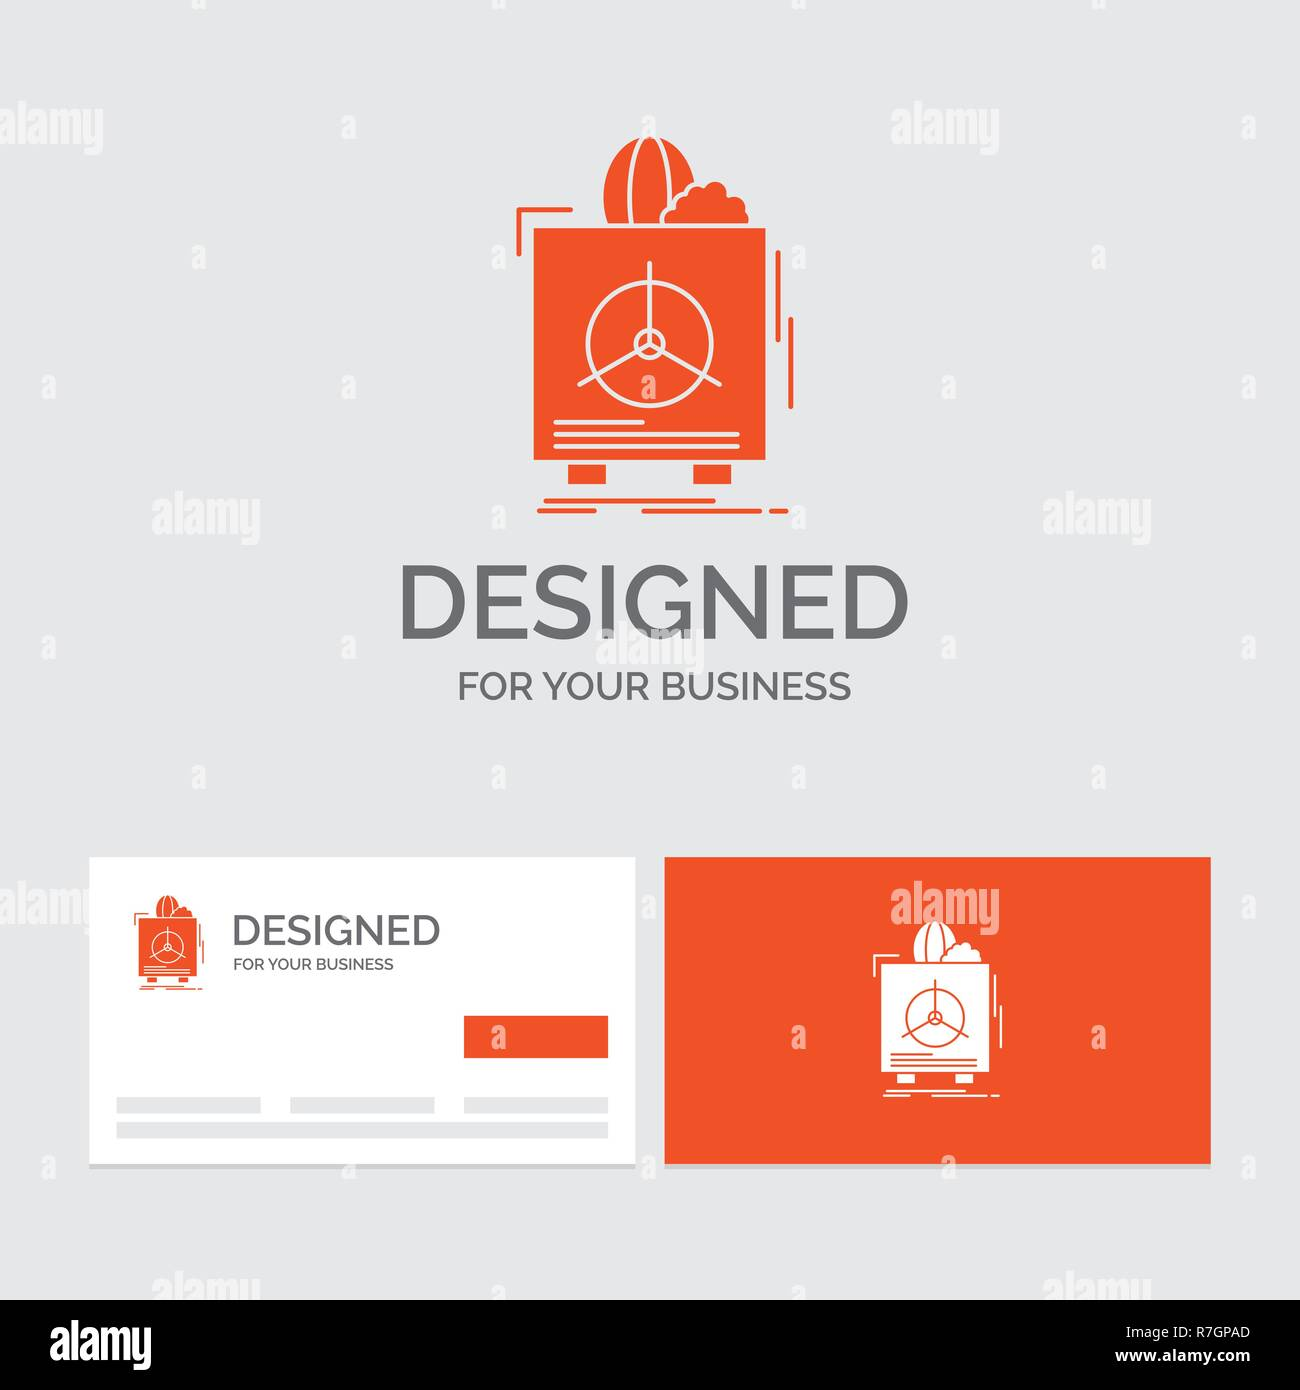 Business logo template for insurance, Fragile, product, warranty, health. Orange Visiting Cards with Brand logo template. - Stock Vector